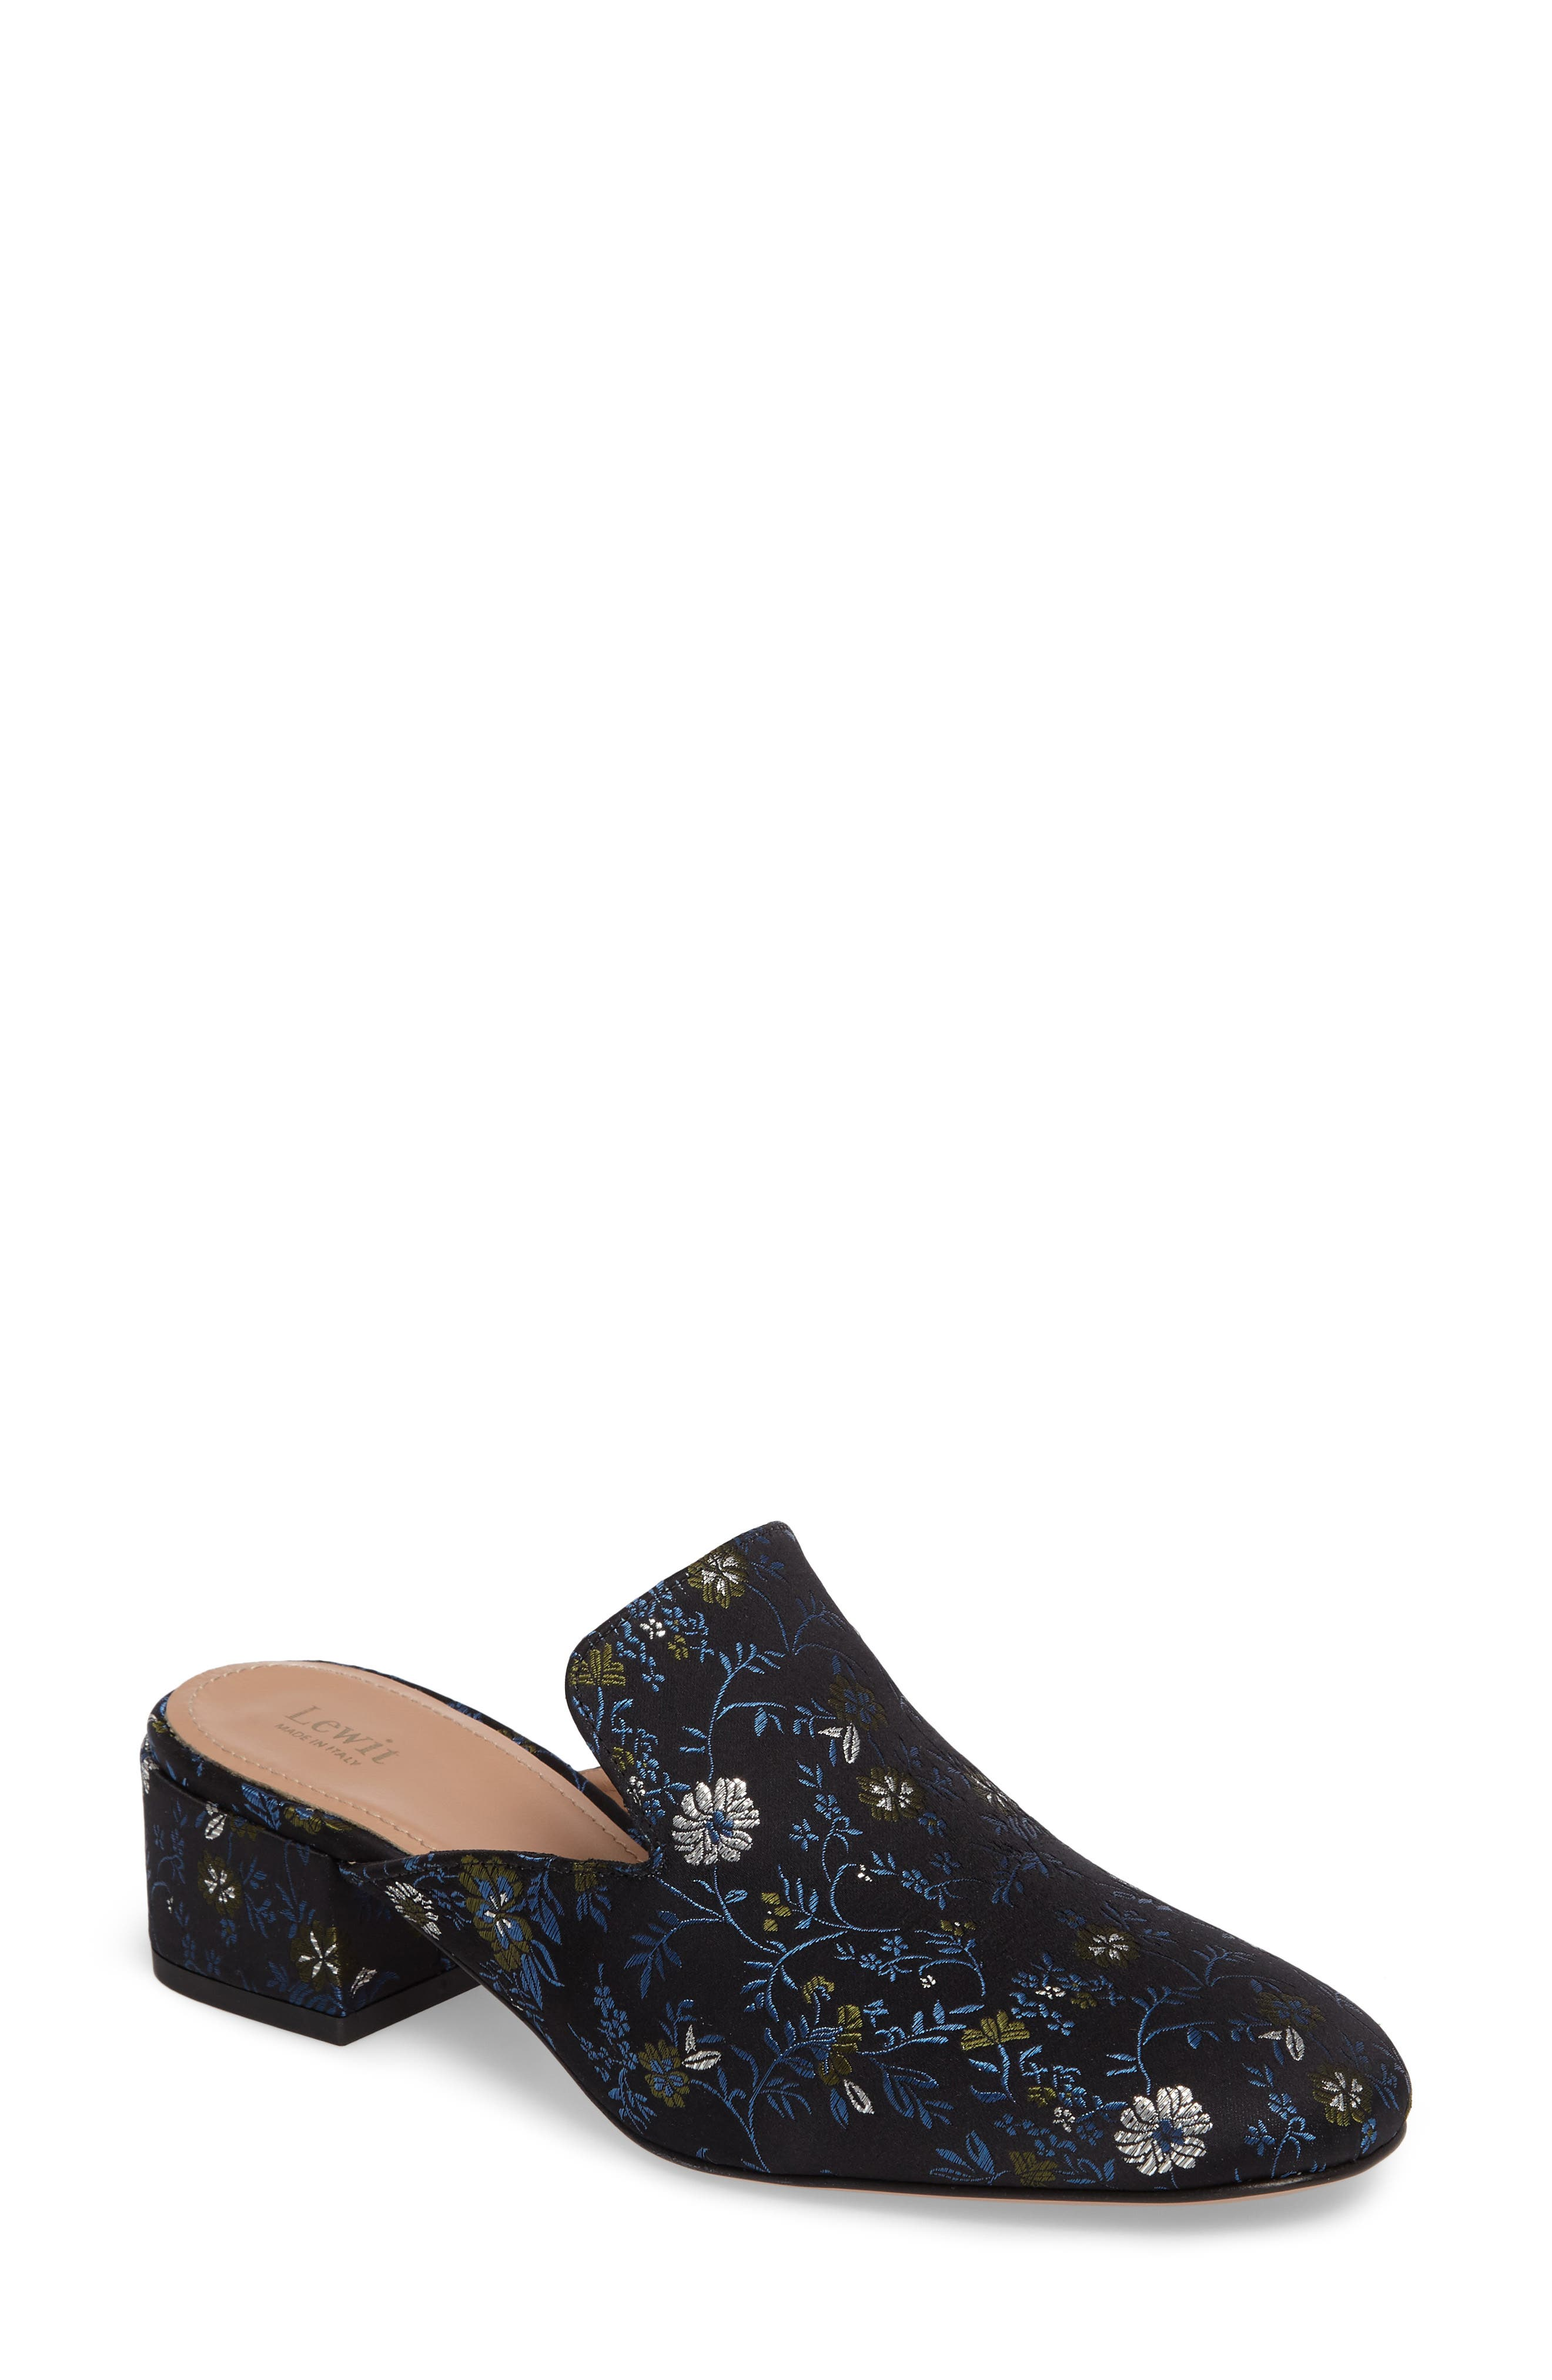 Bianca Embroidered Loafer Mule,                         Main,                         color, 005